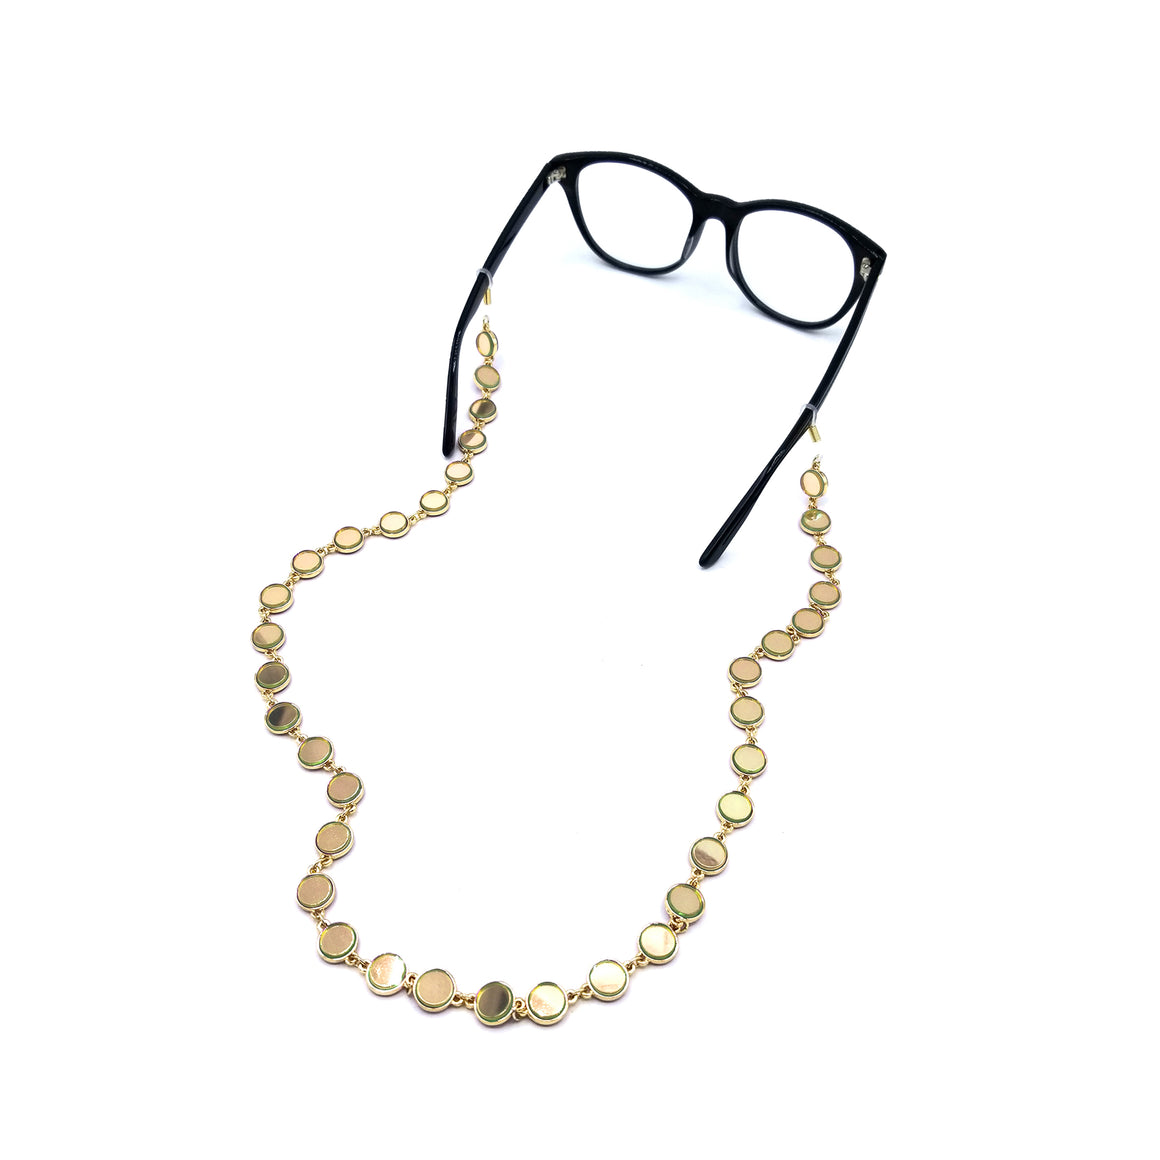 Mirror Eyewear Chain, Glasses Chains, Tuleste, Tuleste